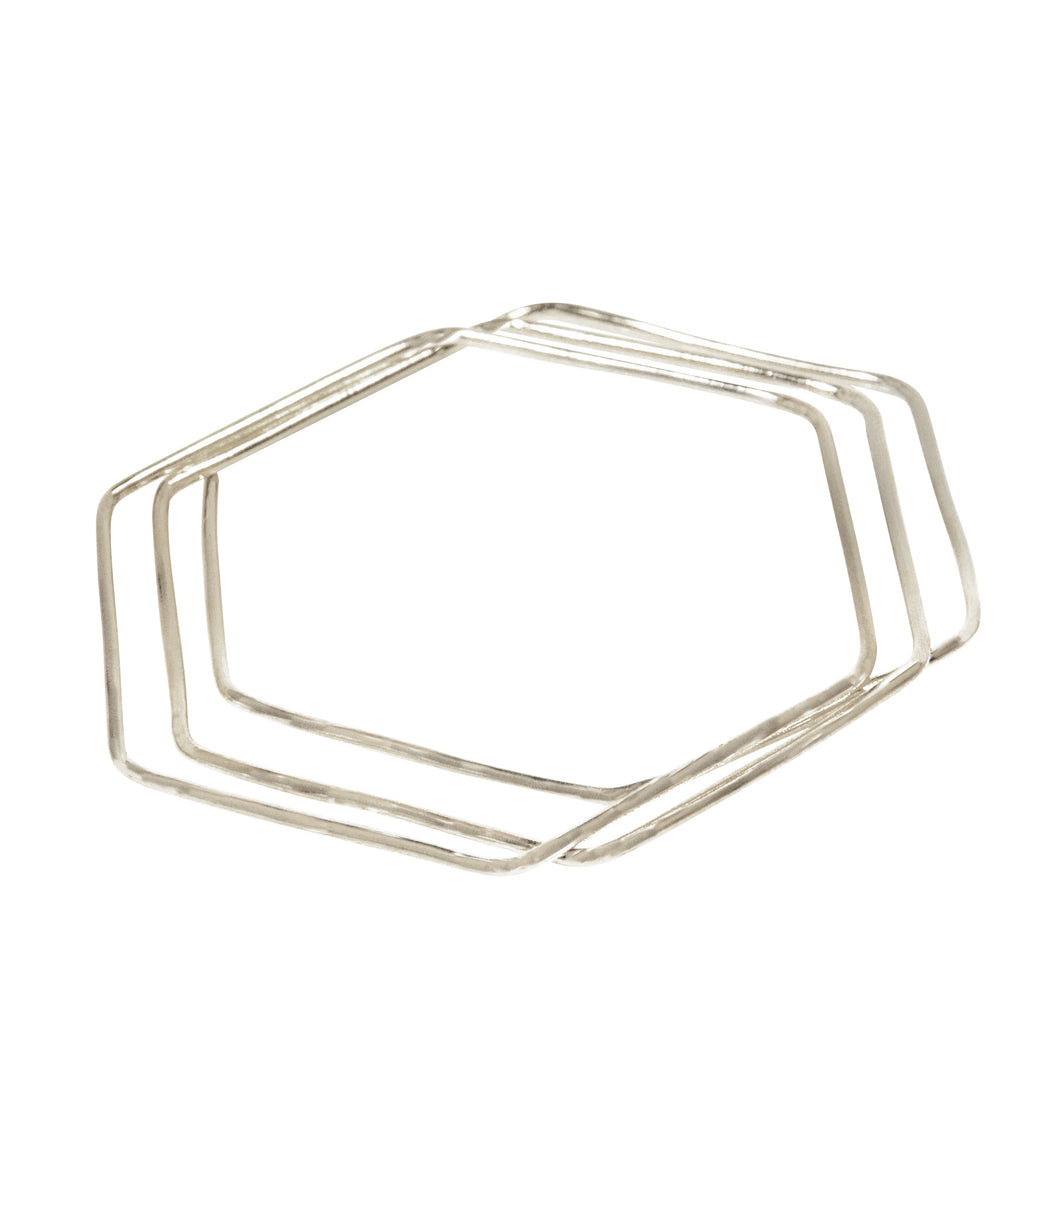 geo bangles rhodium hexagon shape set of 3